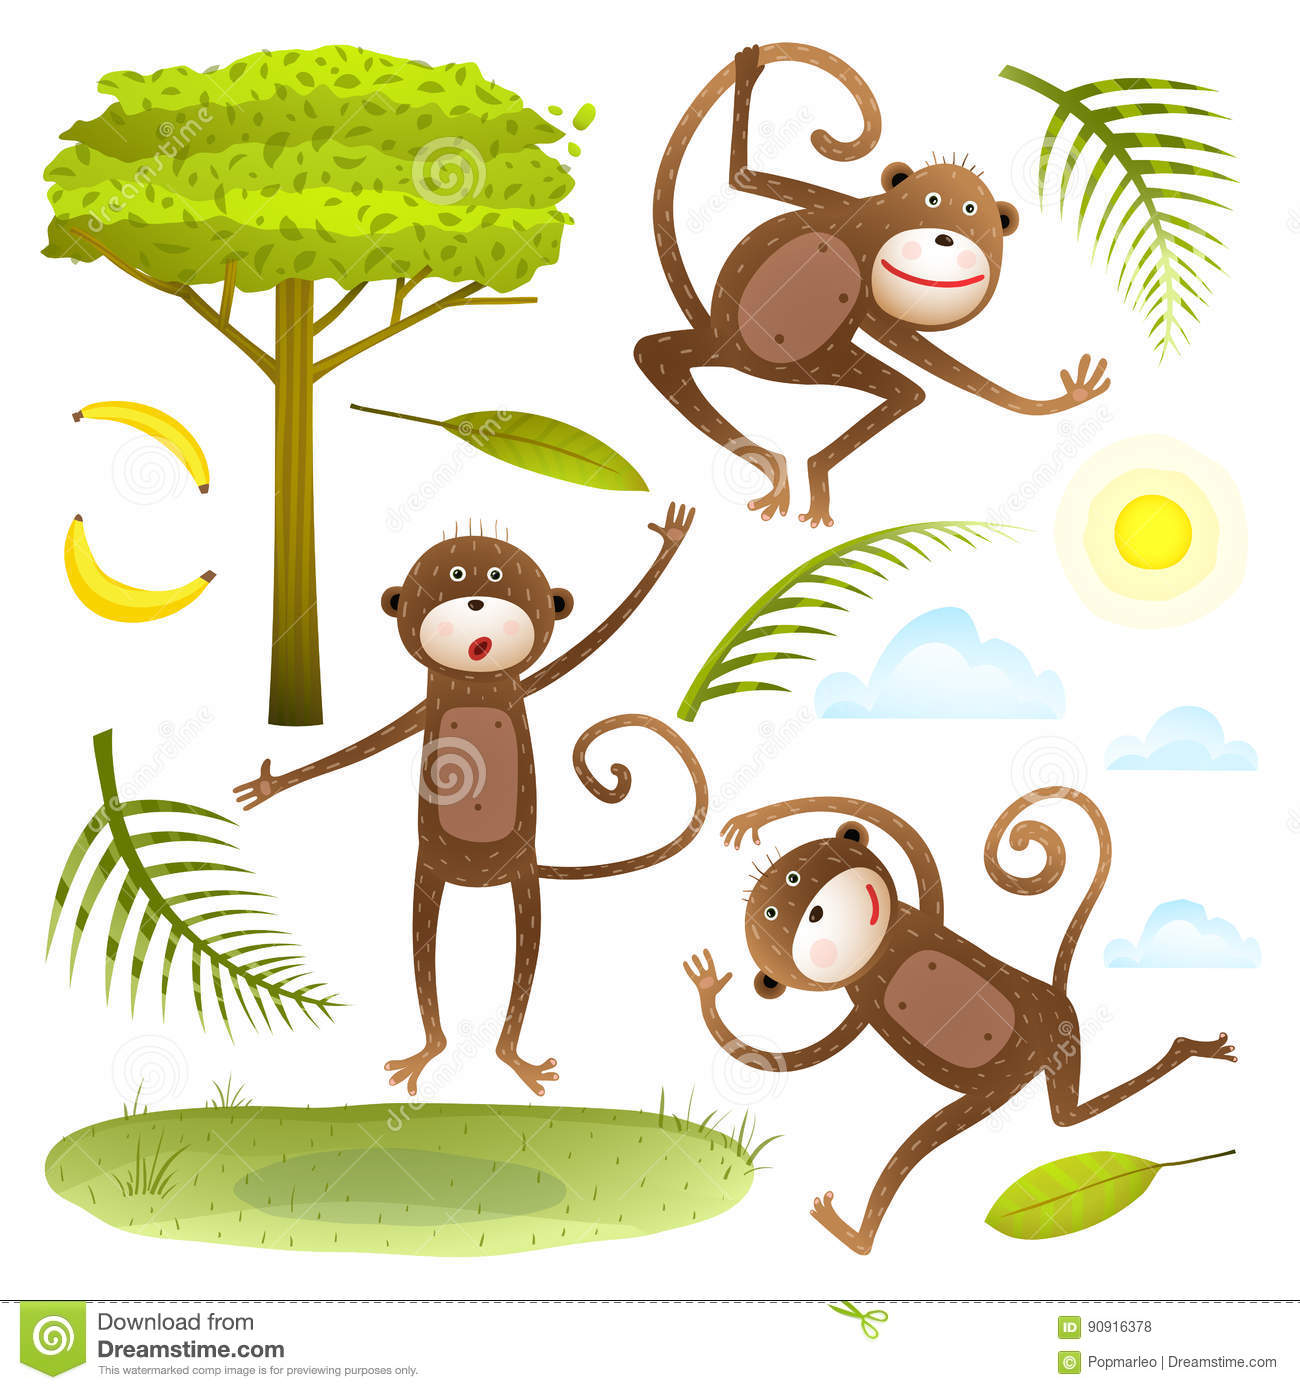 Funny Monkeys Friends With Tree Leaves Sun Clouds Lawn Clip Art.